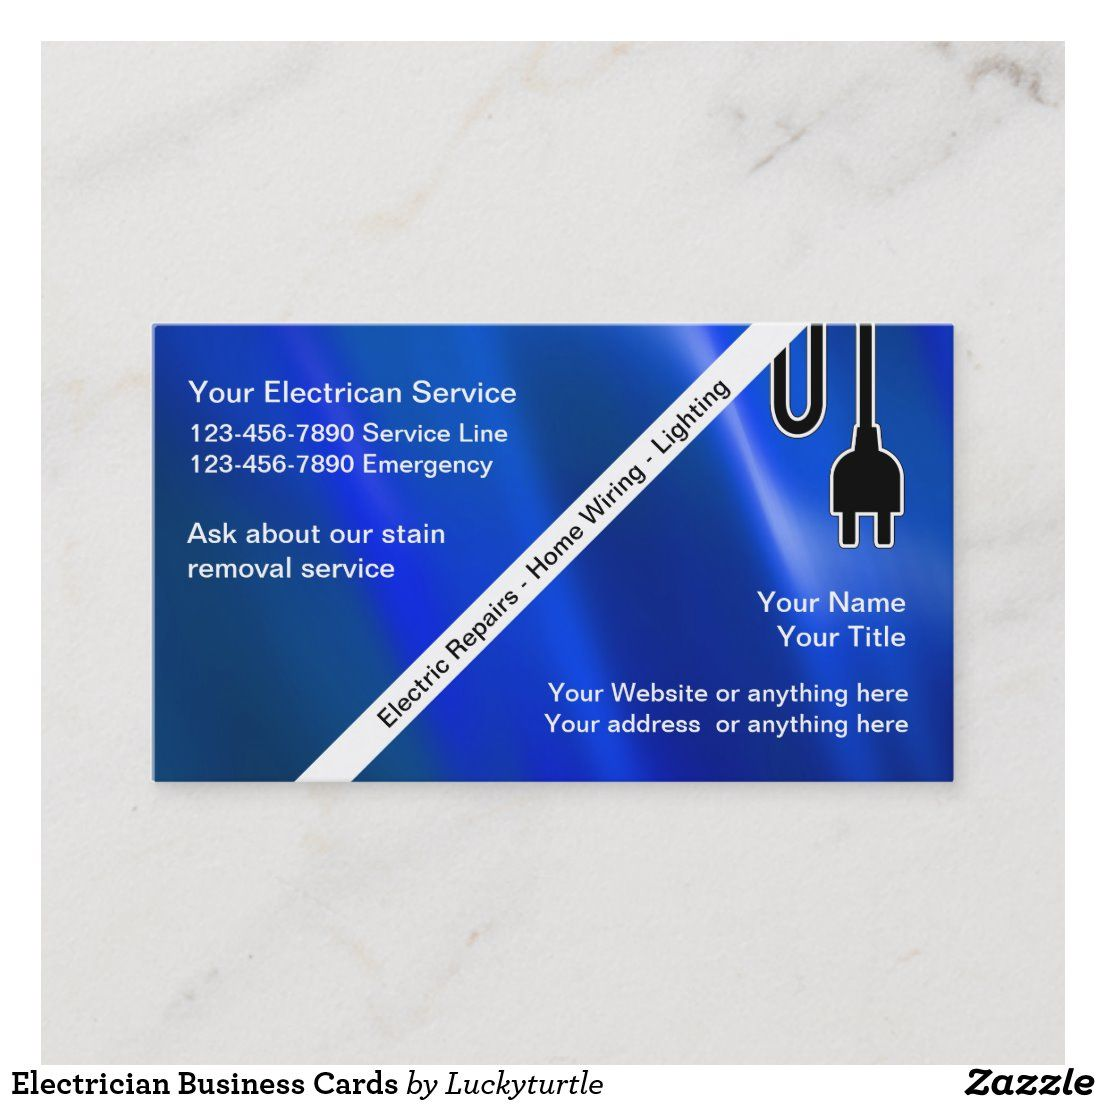 Electrician Business Cards Zazzle Com In 2021 Electrician Business Cards Business